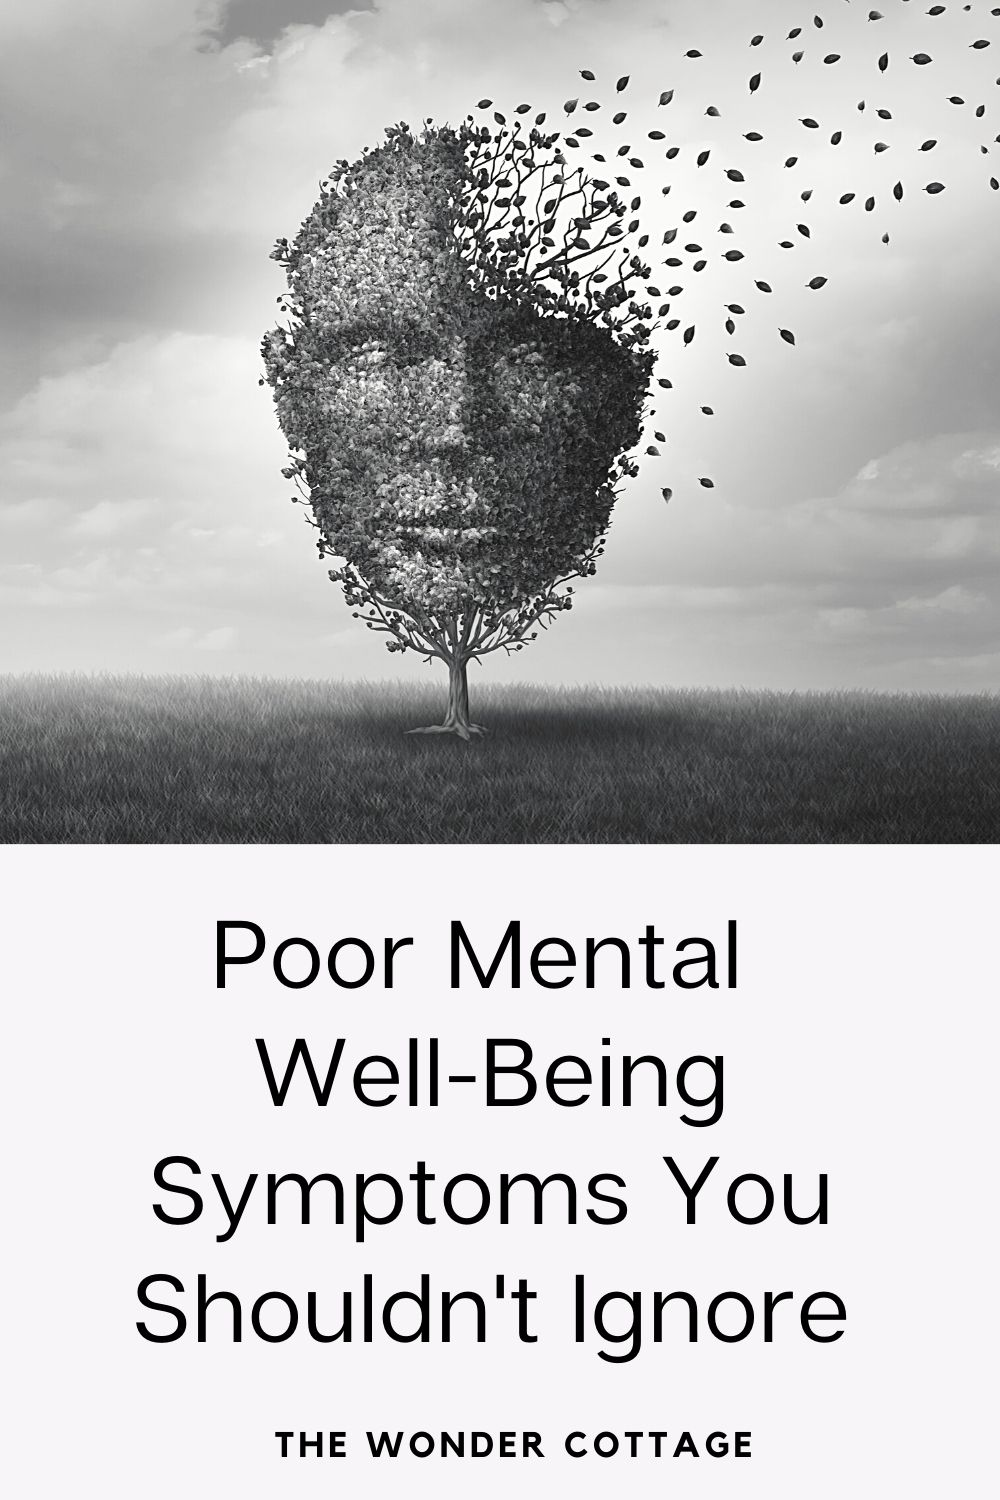 poor mental well-being symptoms you shouldn't ignore